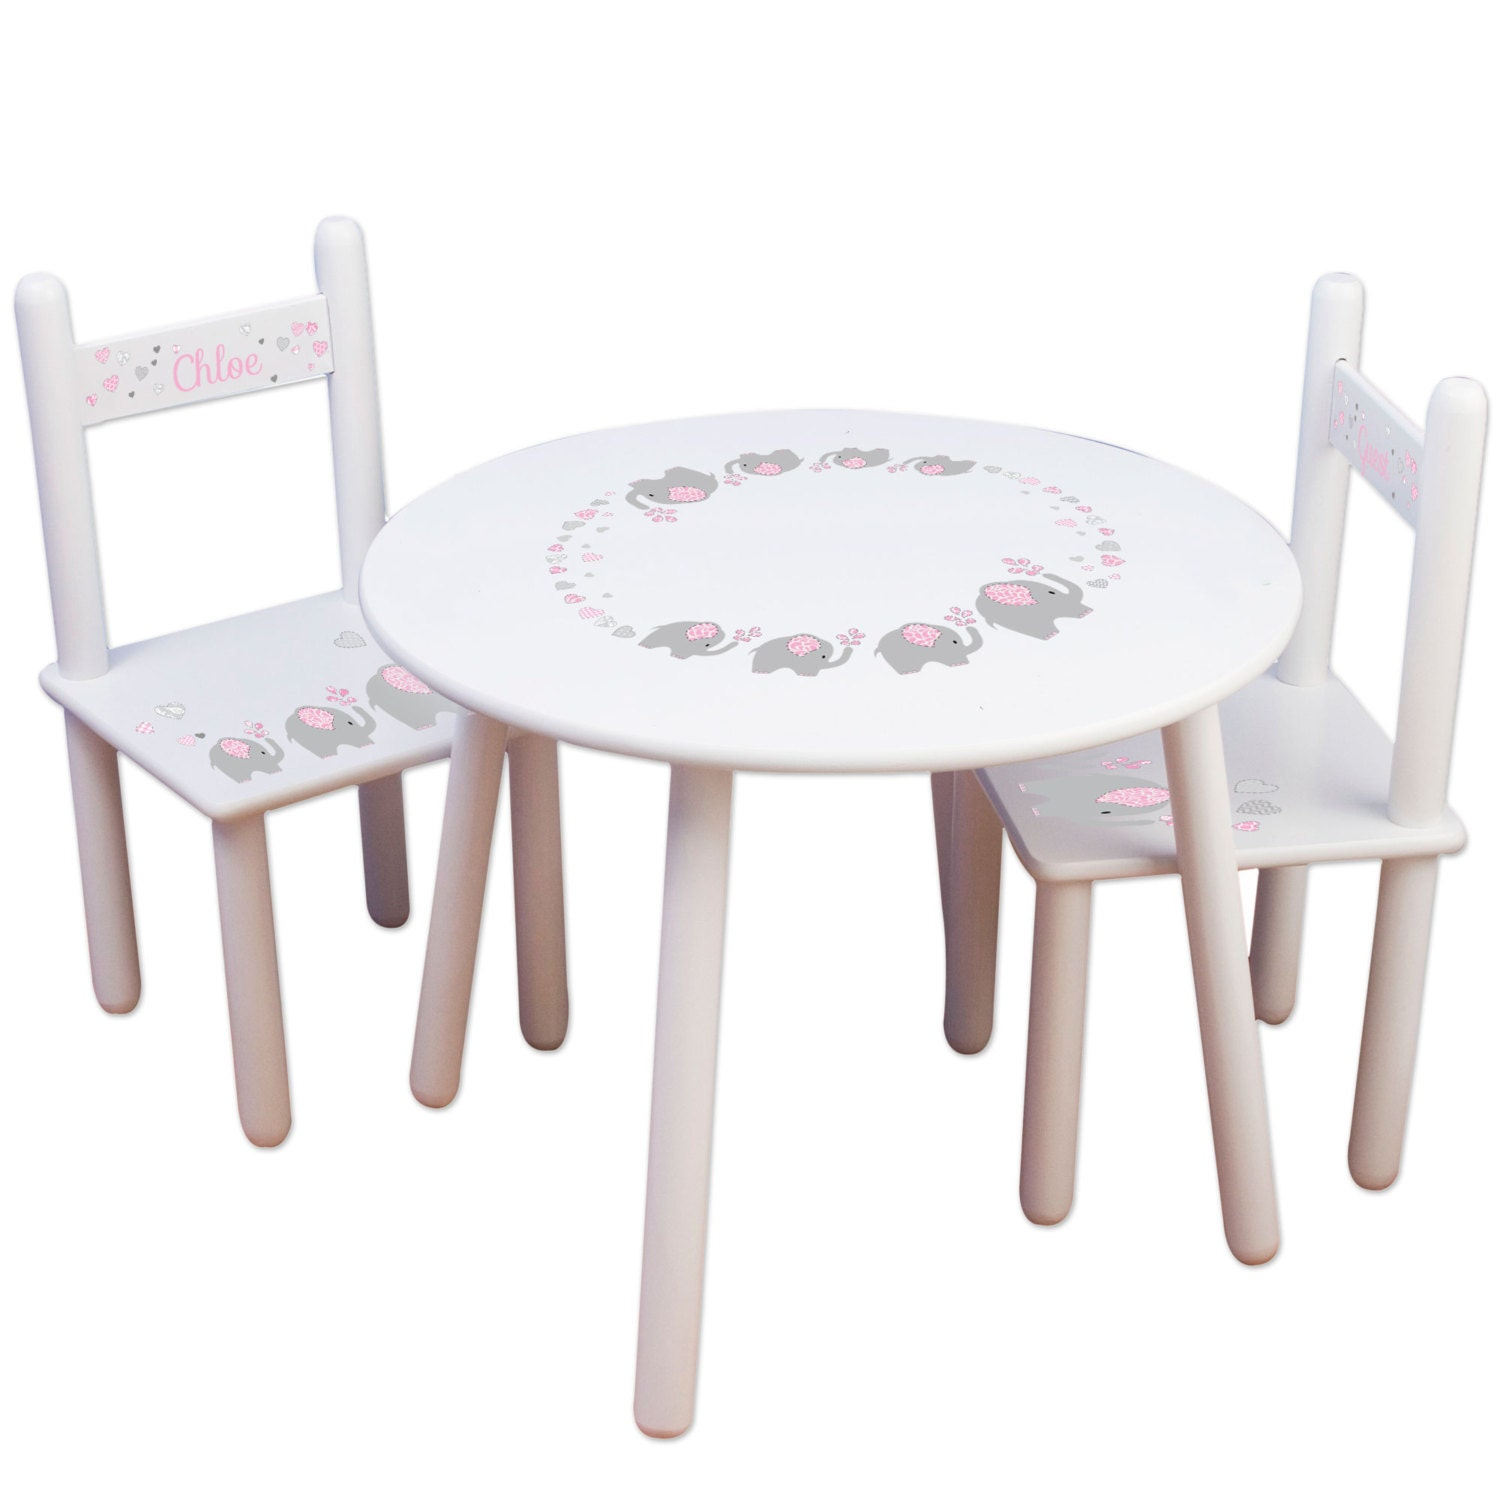 Kids Table and Chair Set Kids Furniture for Elephant Nursery